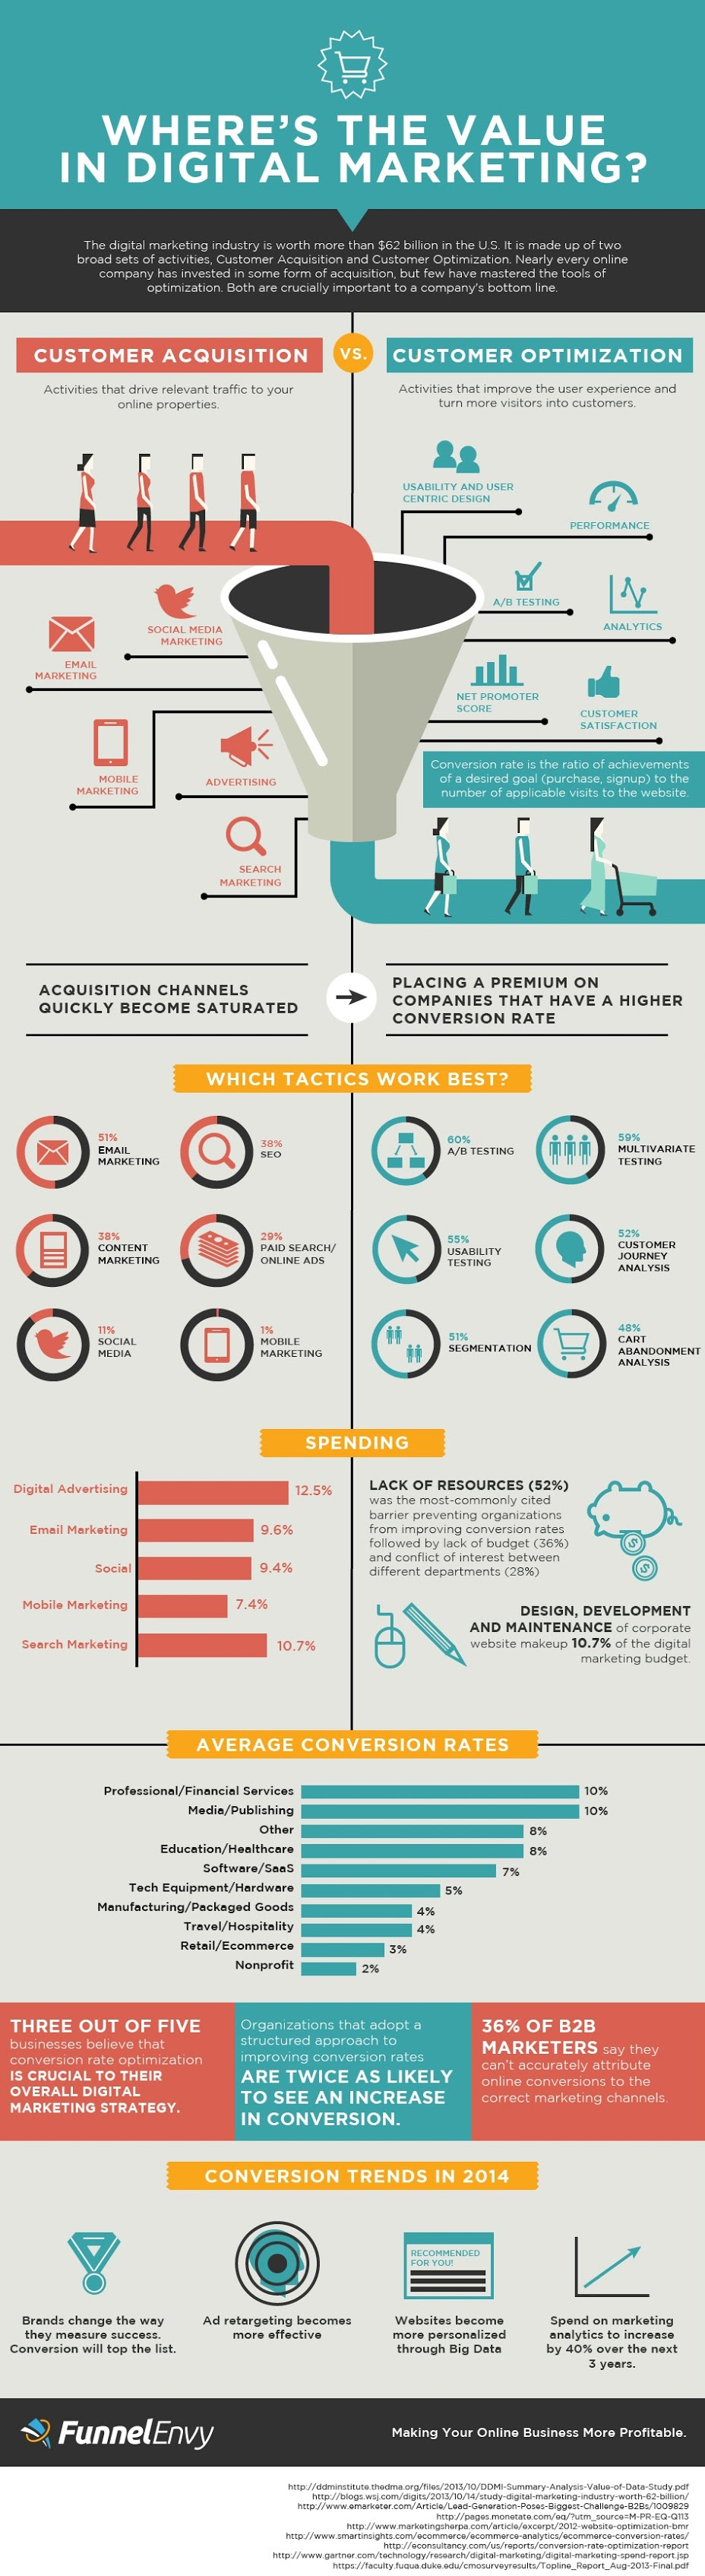 Where's The Value in Digital Marketing - infographic